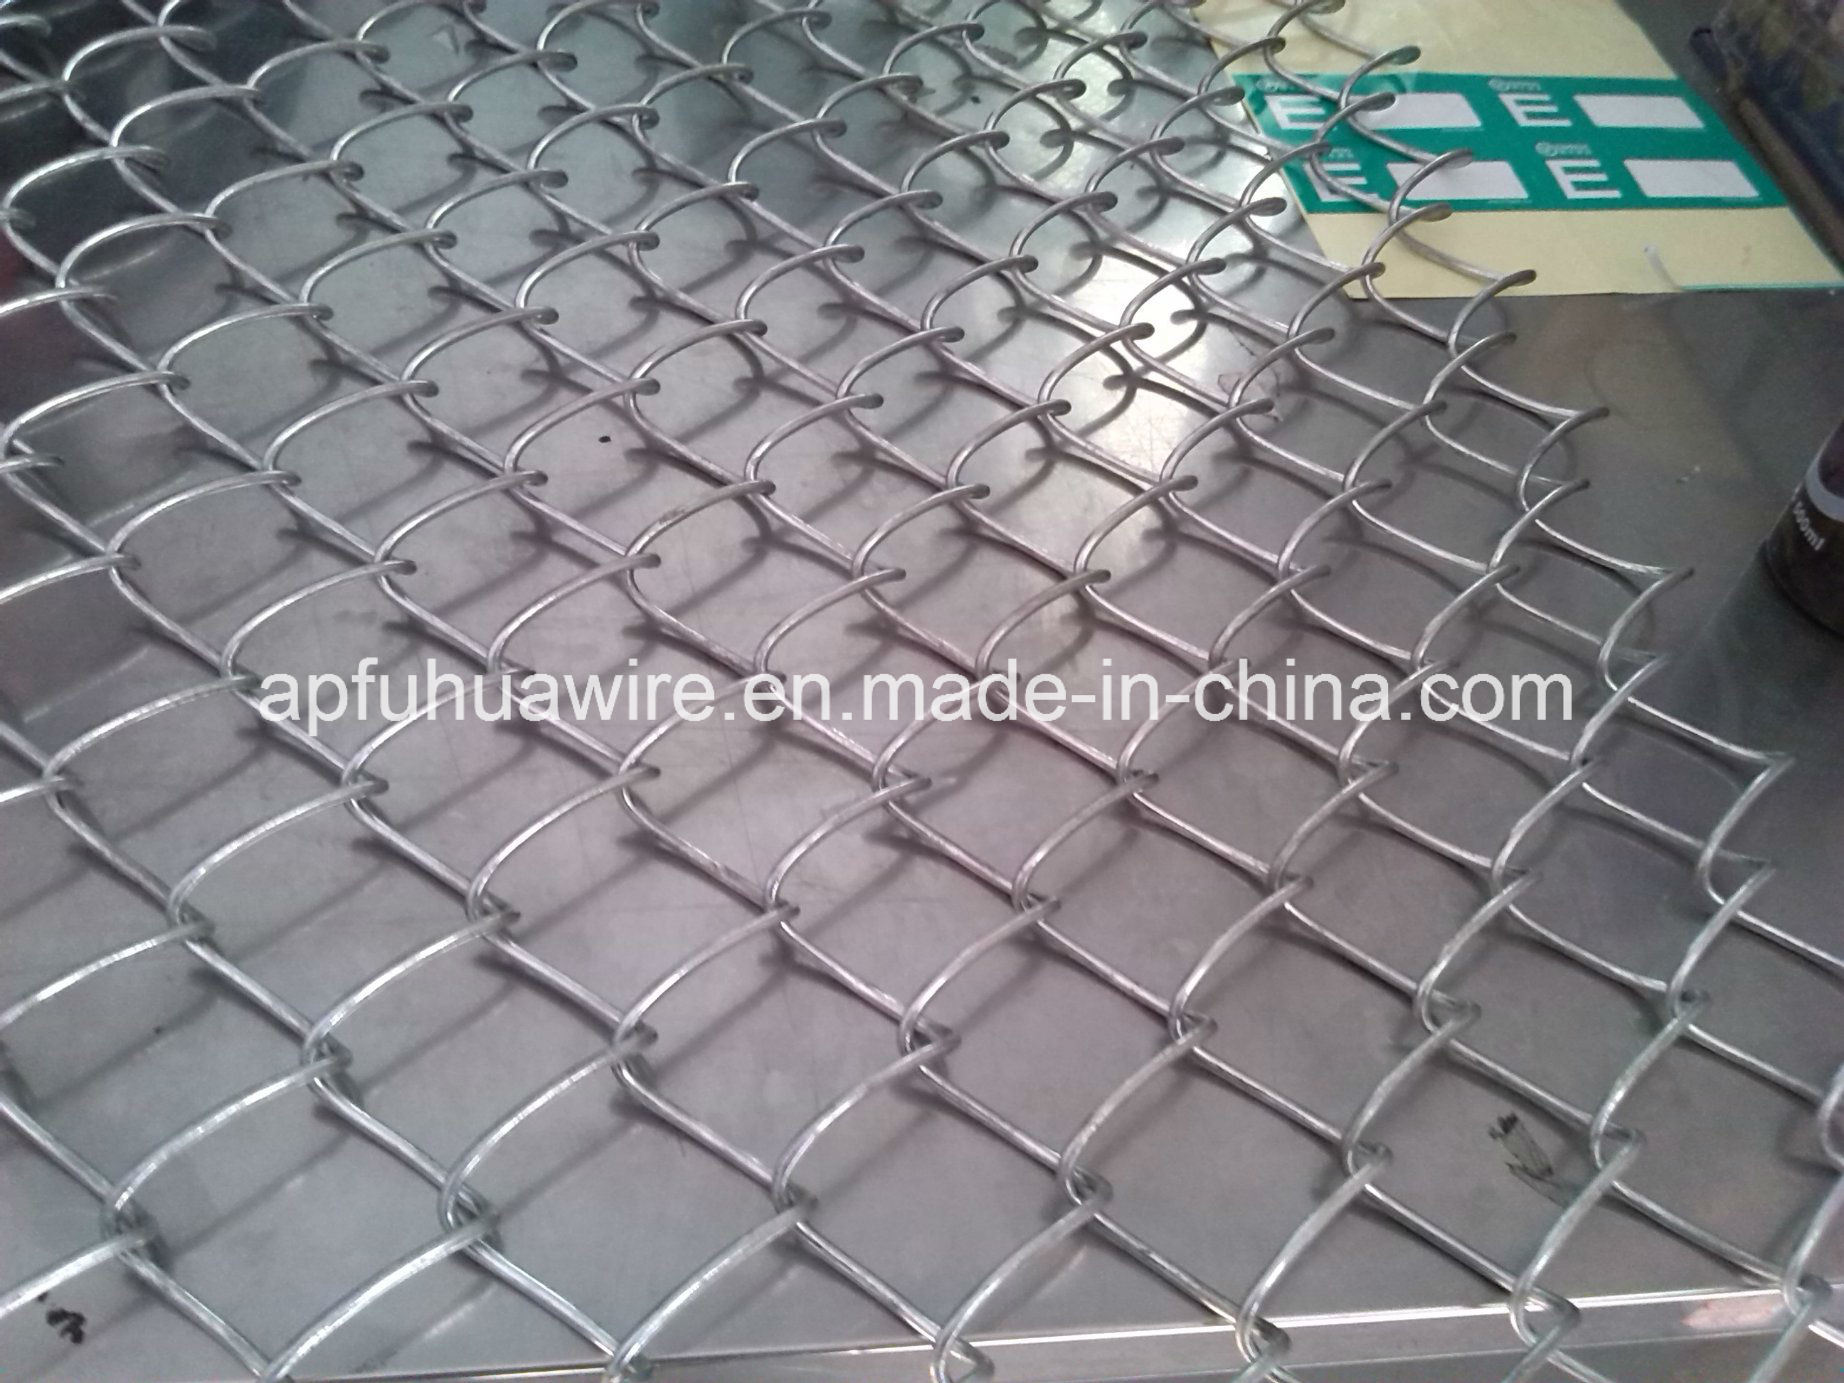 China Chain Link Fence Wire Mesh - China Chain Link Fence, PVC ...